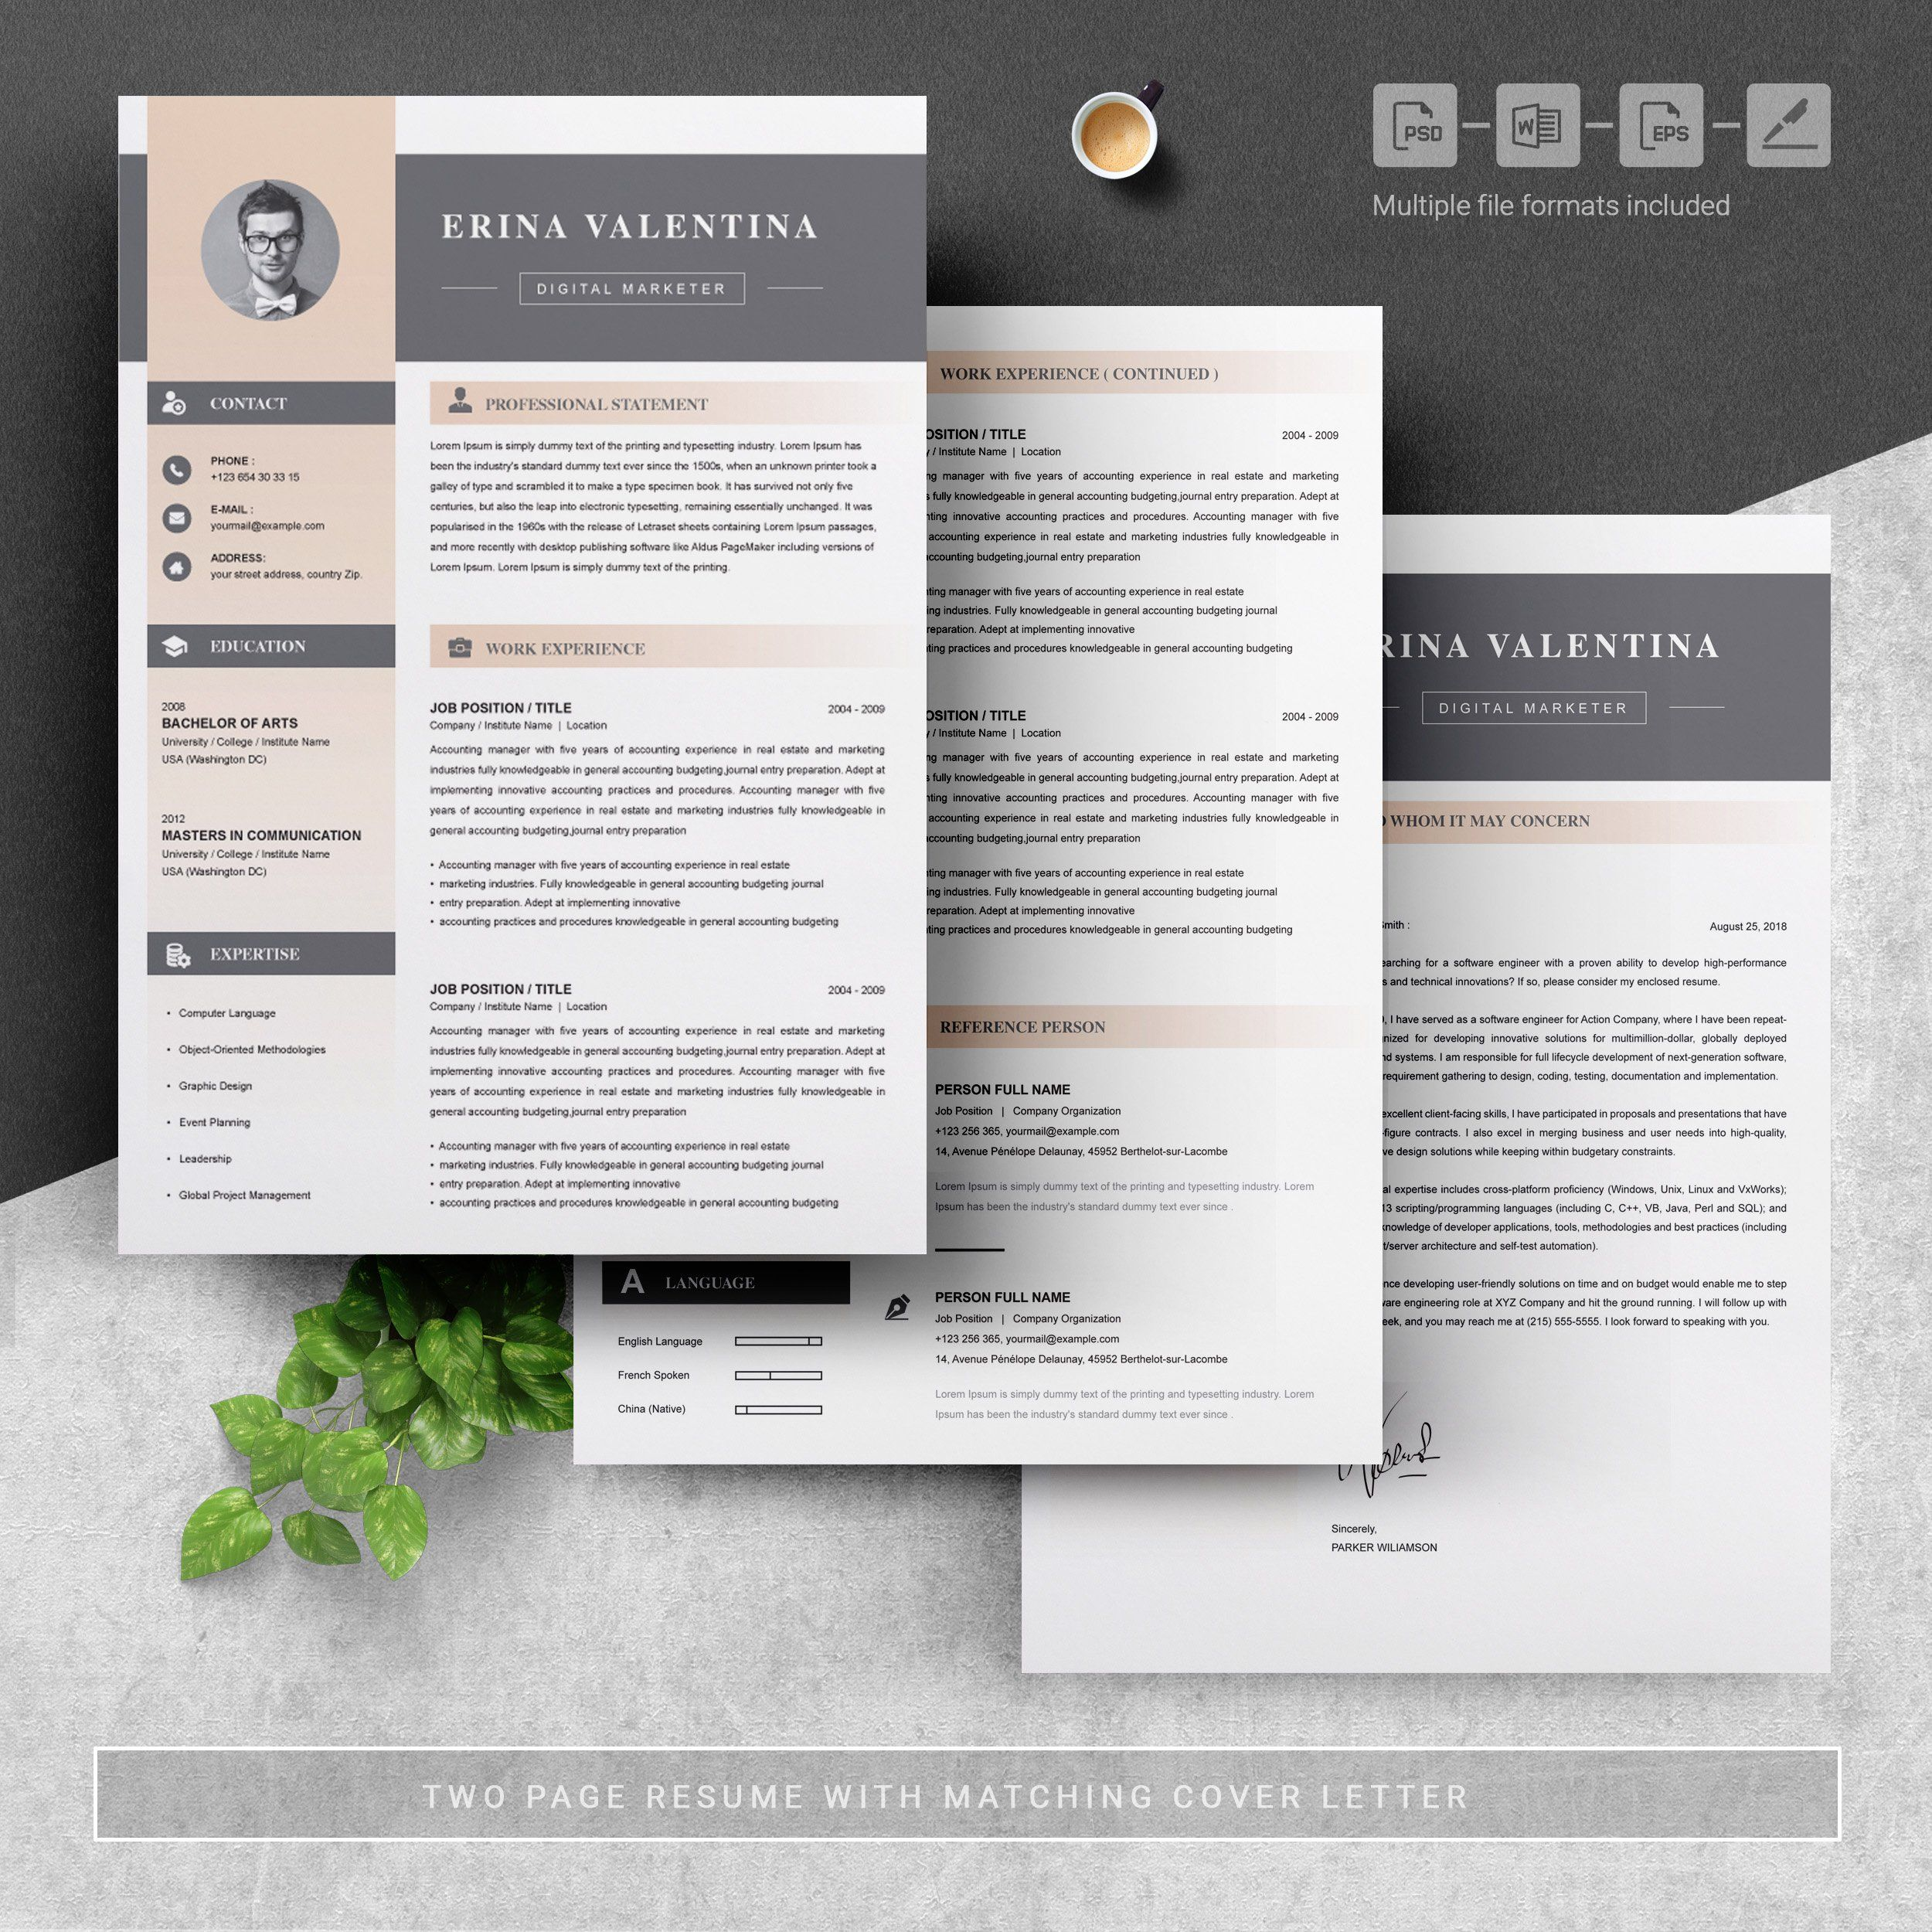 Resume / CV with Cover Letter #Ad , #Ad, #amp#titles#COLOR ...